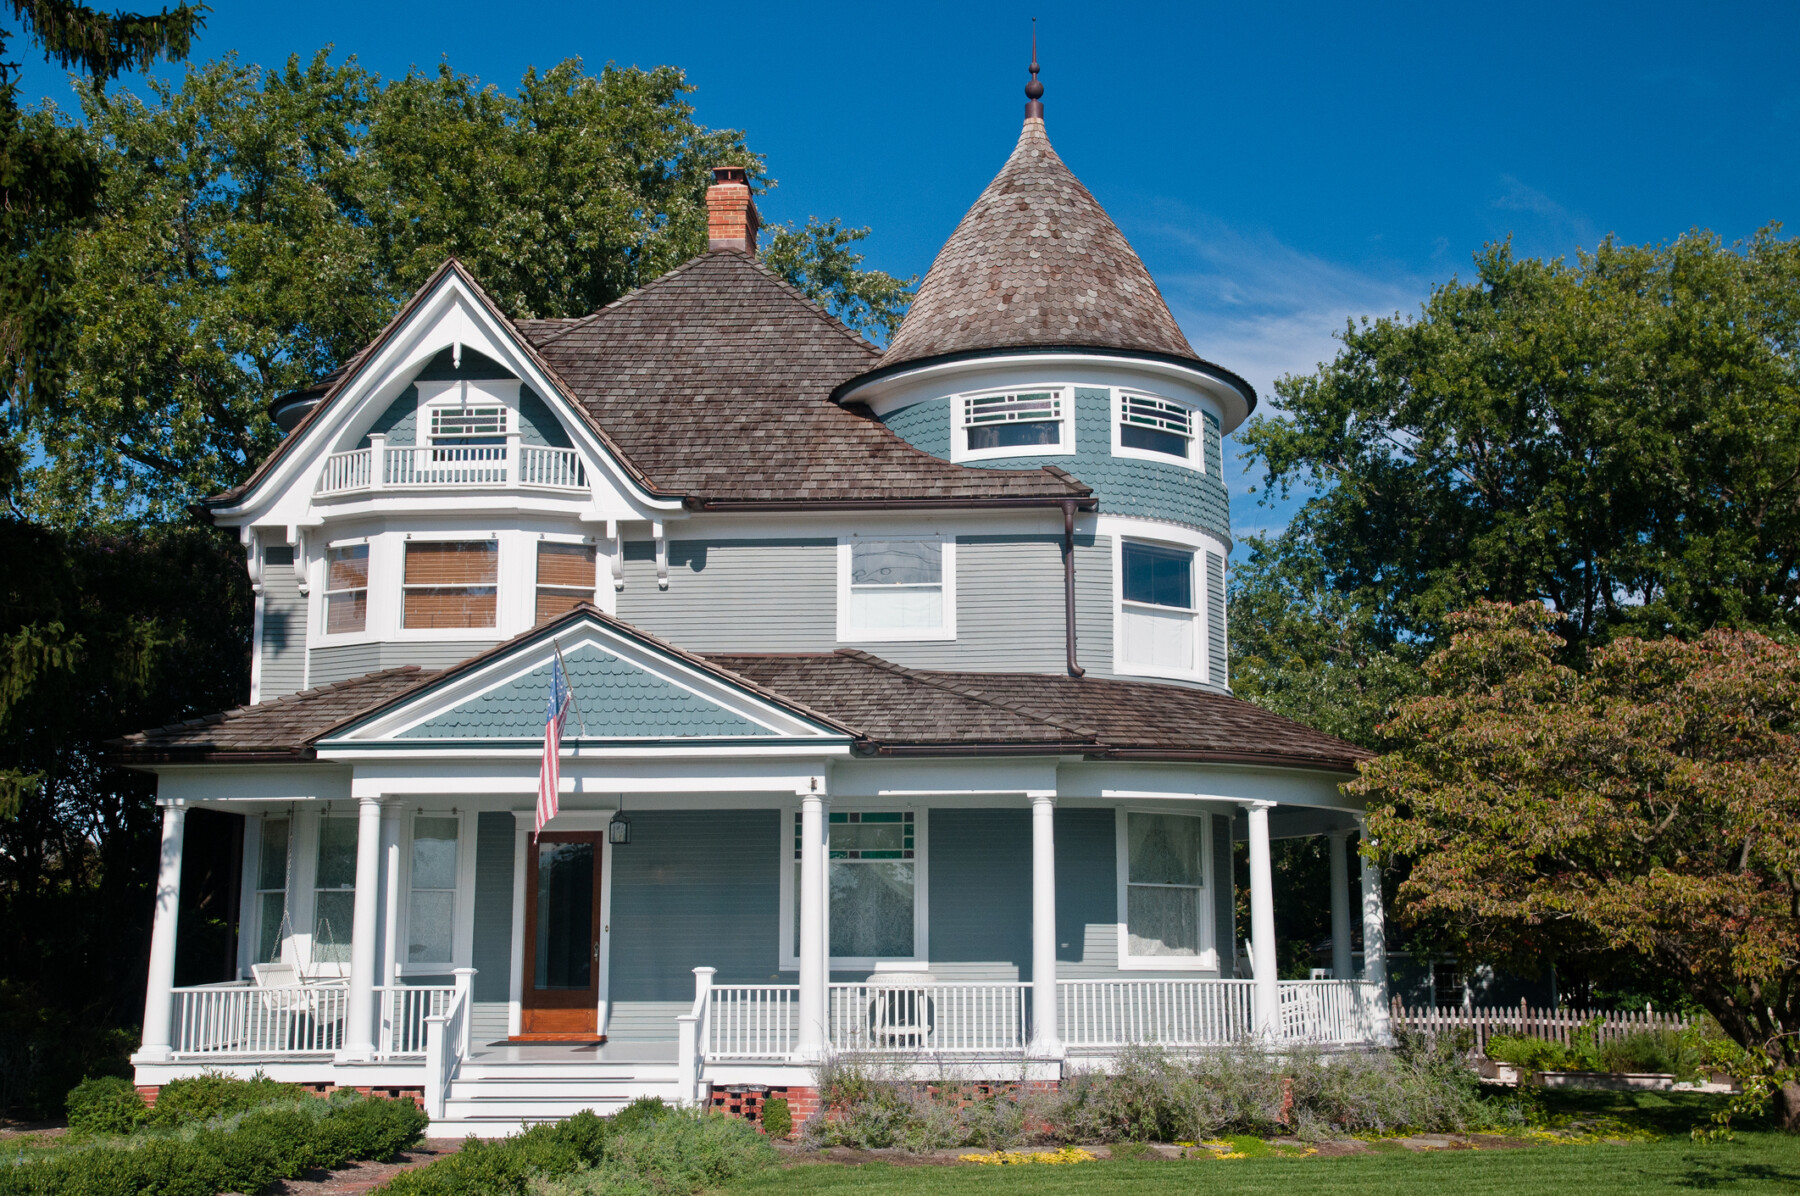 Victorian-Style Home: Grandeur, Complex, and One-of-a-Kind